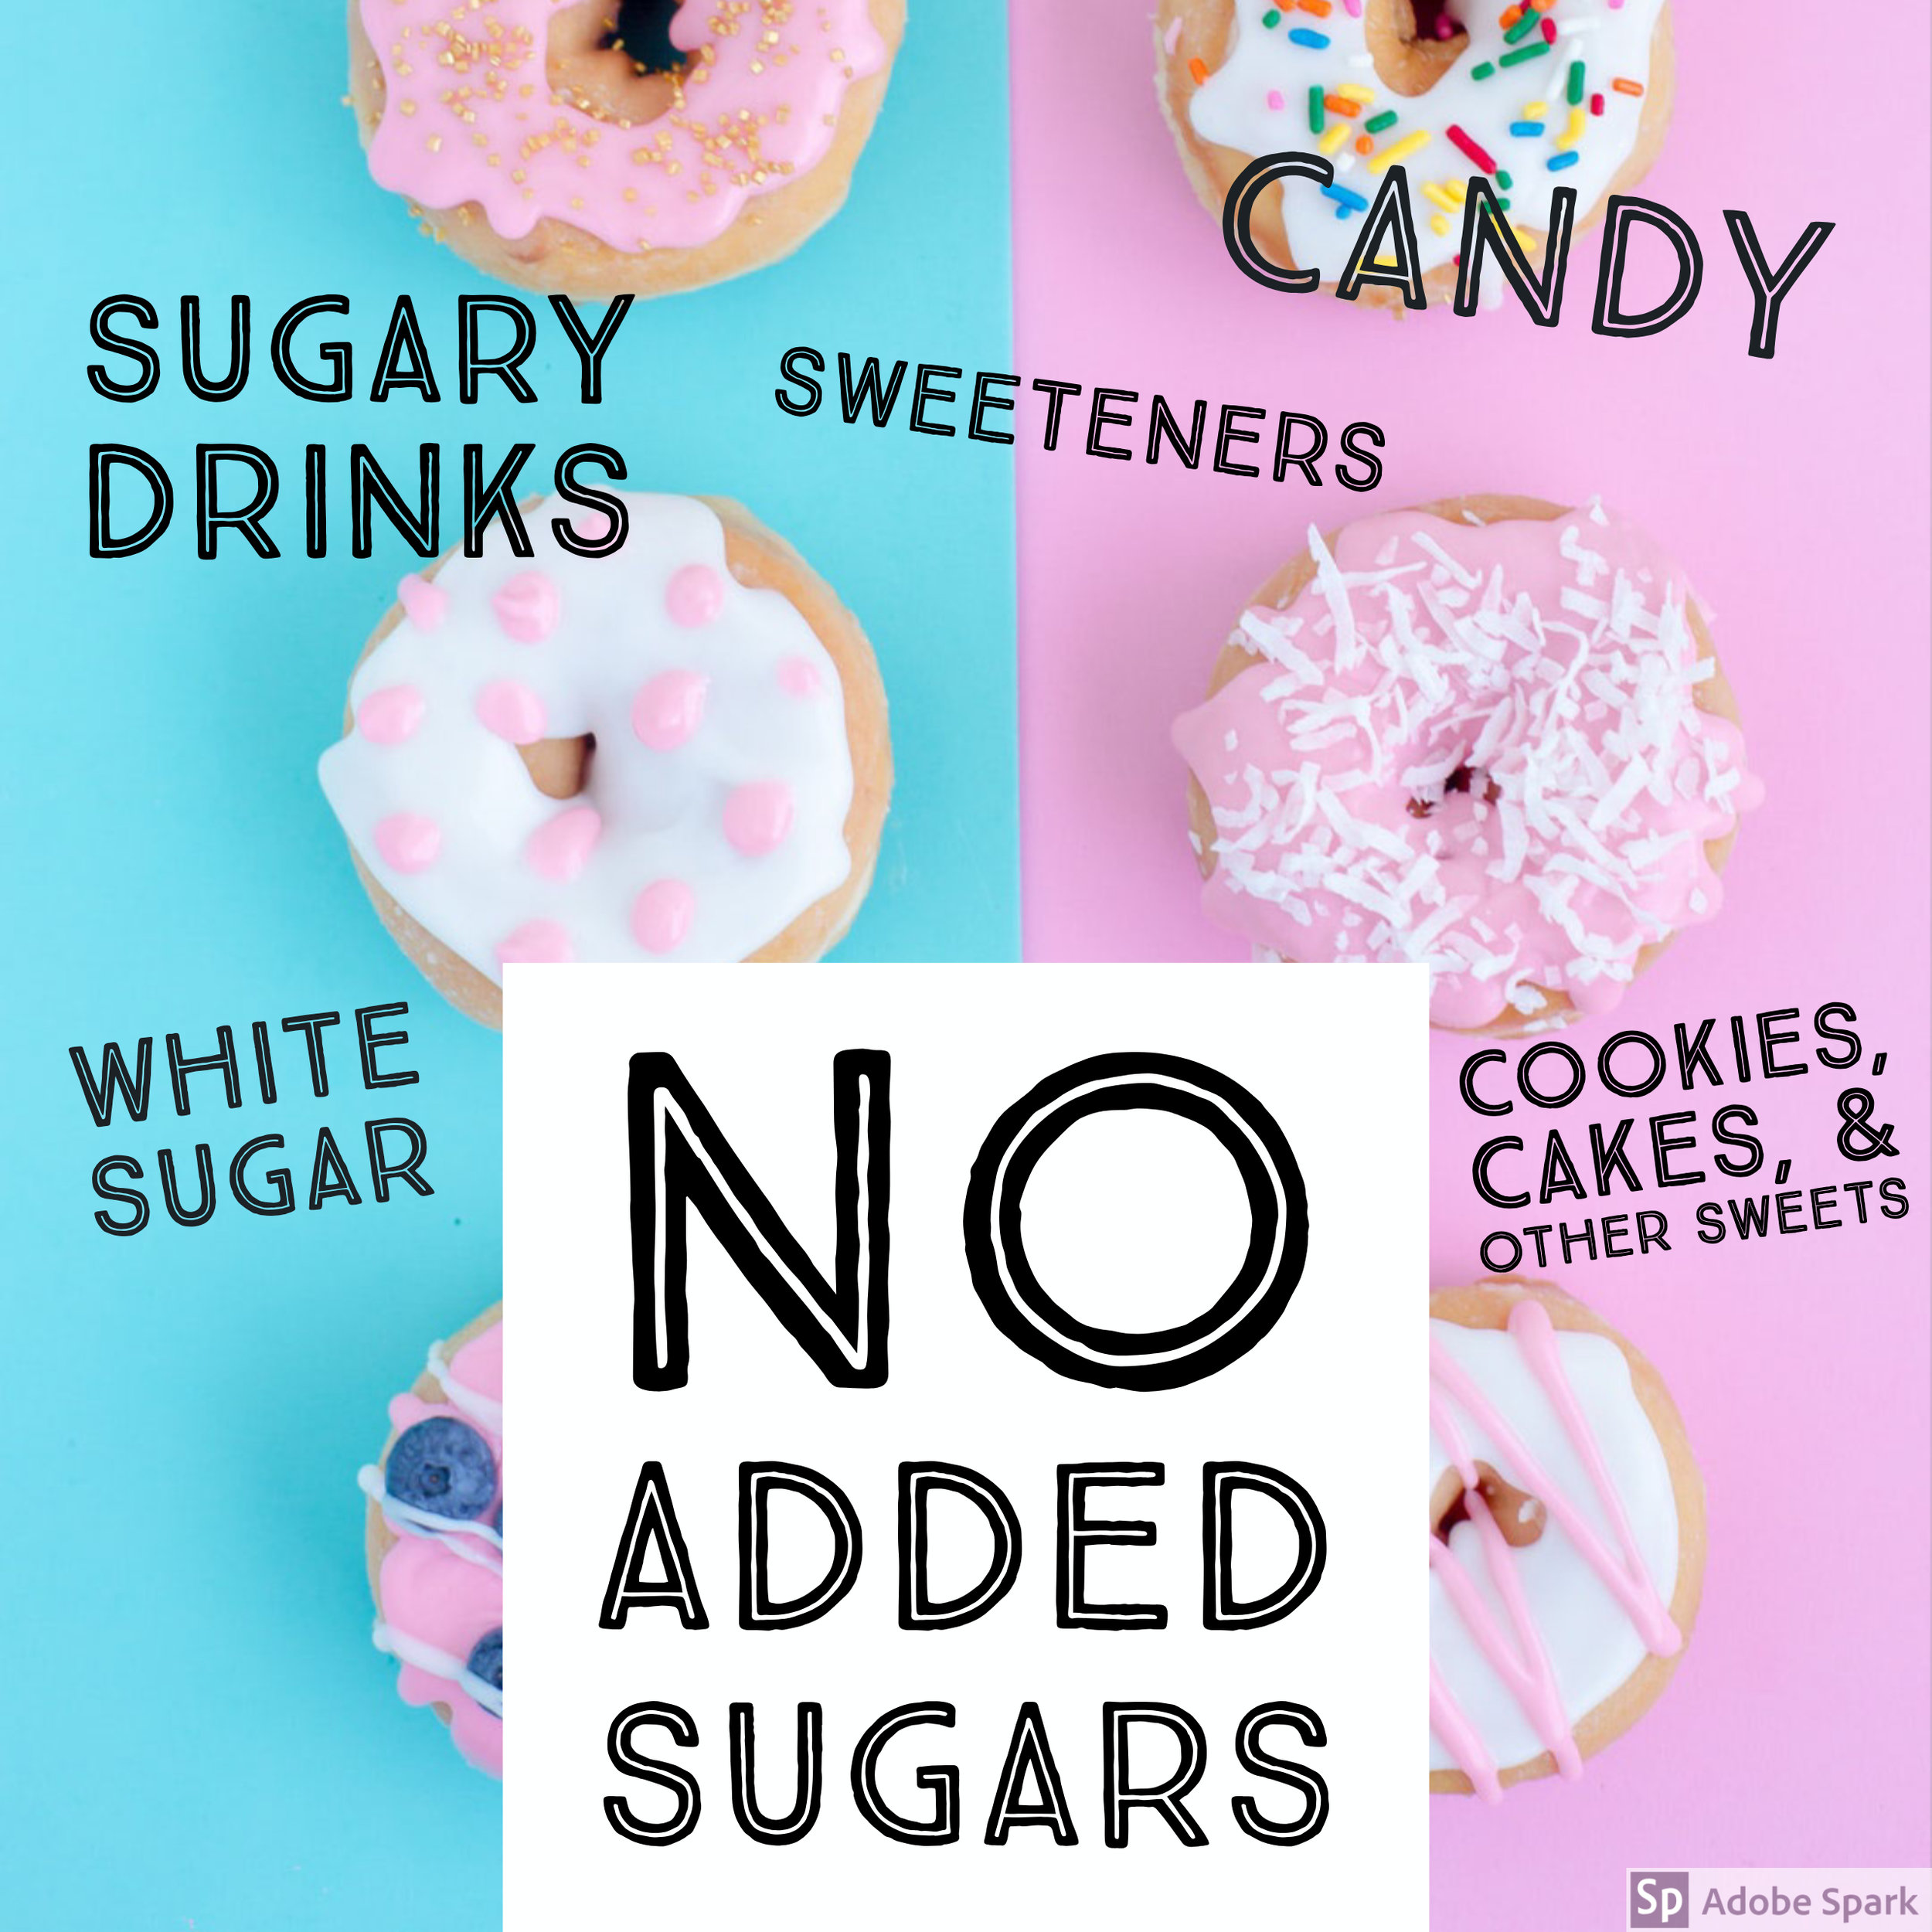 Added Sugars.jpg